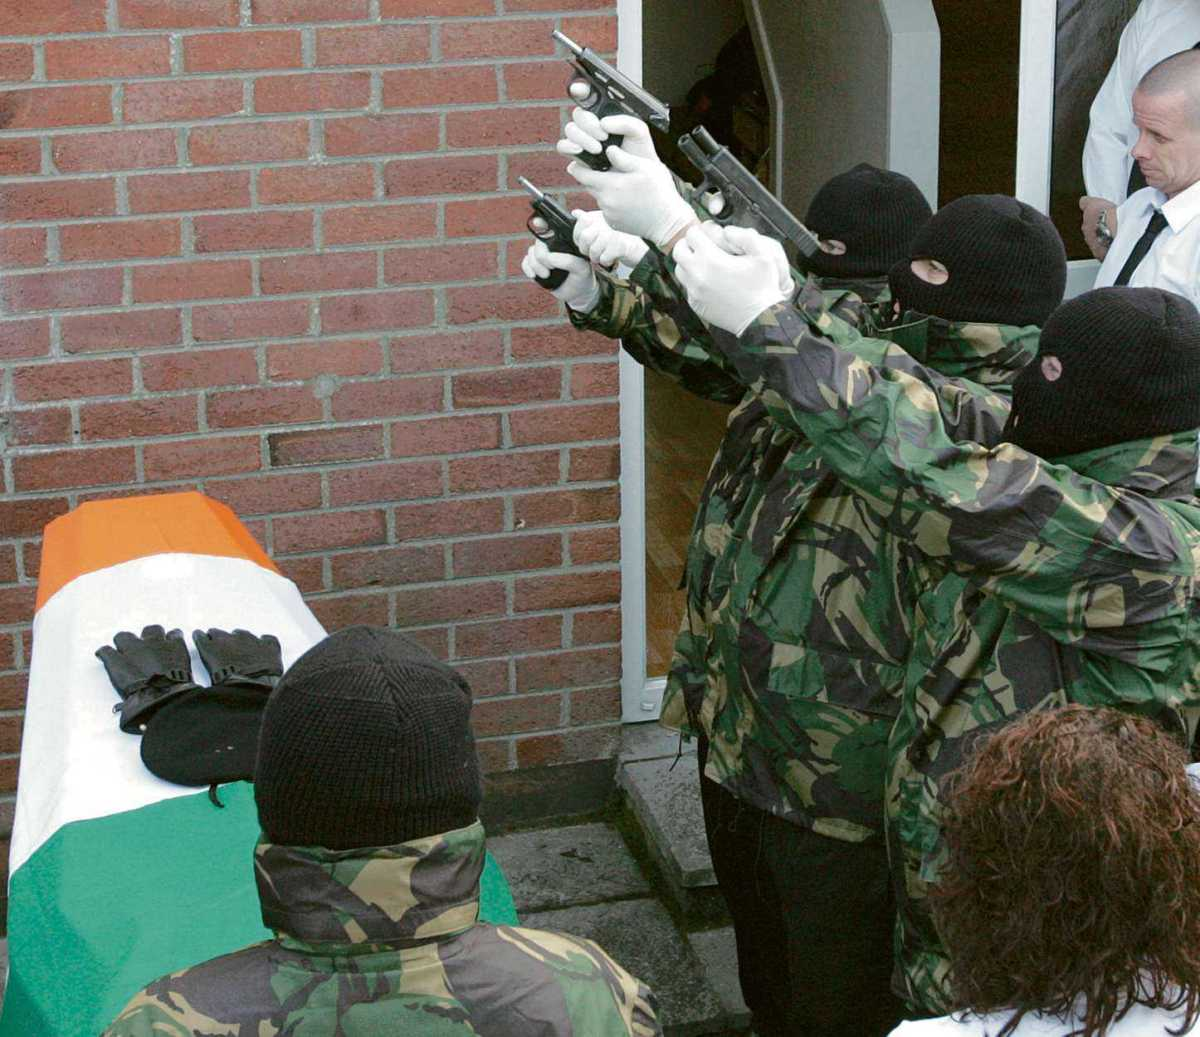 Is the US more likely to experience The Troubles of Northern Ireland, or the Spanish Civil War?